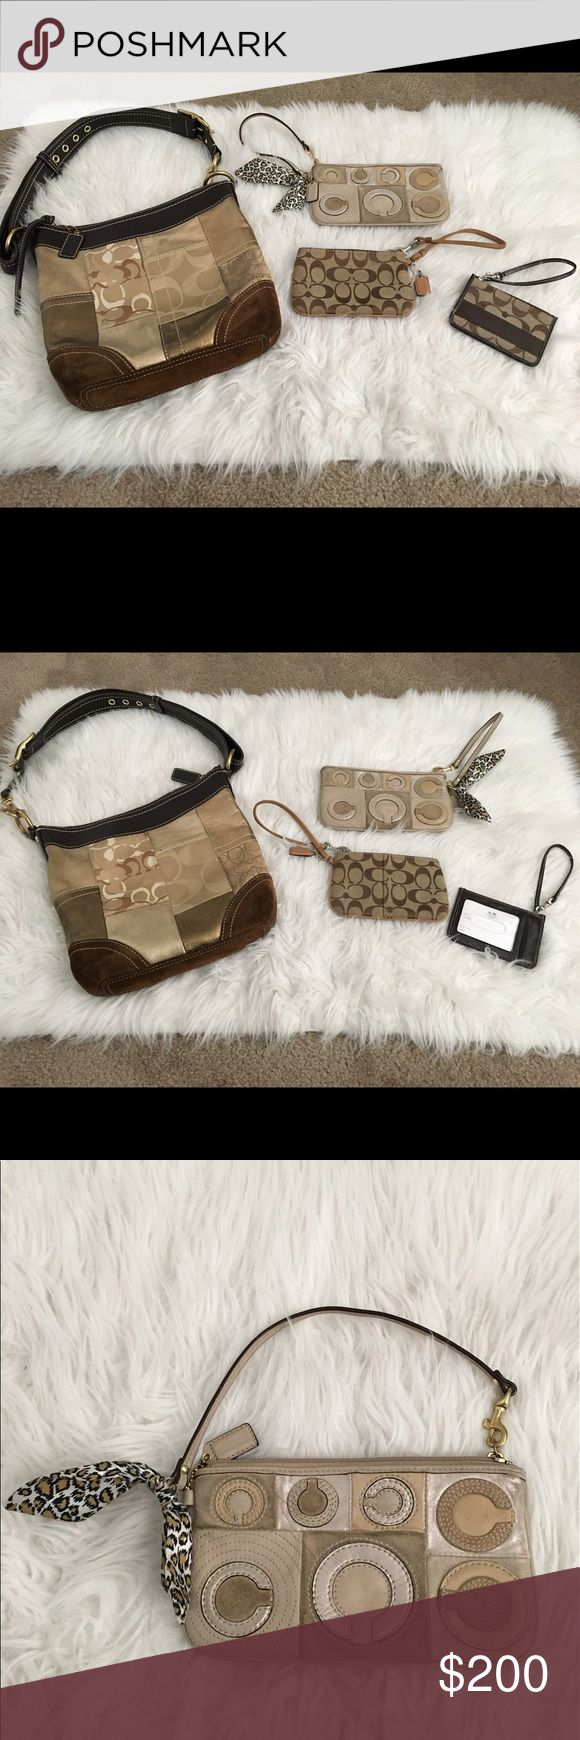 Bundle of 4 Coach Duffle Bag and wristlet wallets Beautiful bundle of Coach signature Duffle bag and wristlets. 1.Coach gold holiday patchwork Duffle bag; gold-tone hardware,leather trim and accents, shoulder strap,leather hang tag,zipper closure. Inside pockets. 2. Coach signature Patchwork tan leather wristlet with leopard print tie(minor pen mark). 3.Coach brown/tan canvas leather wristlet. 4.Coach Signature CC coin purse/keychain ID holder wristlet. All in very good condition with minor…